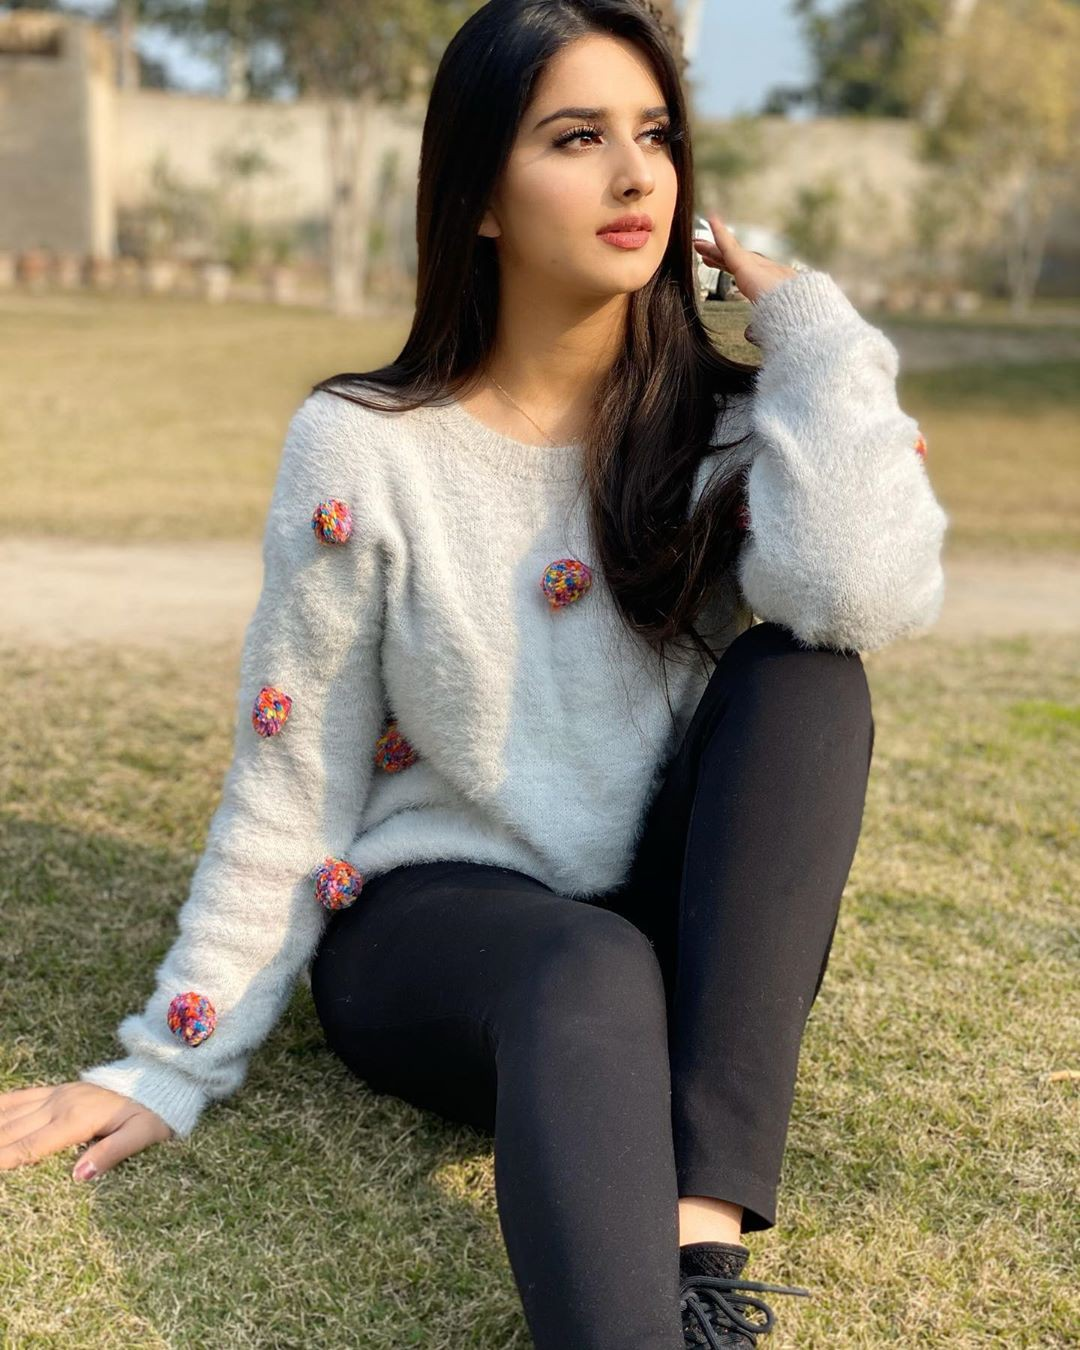 Alishbah Anjum tights, fur matching ideas for girls, photoshoot poses